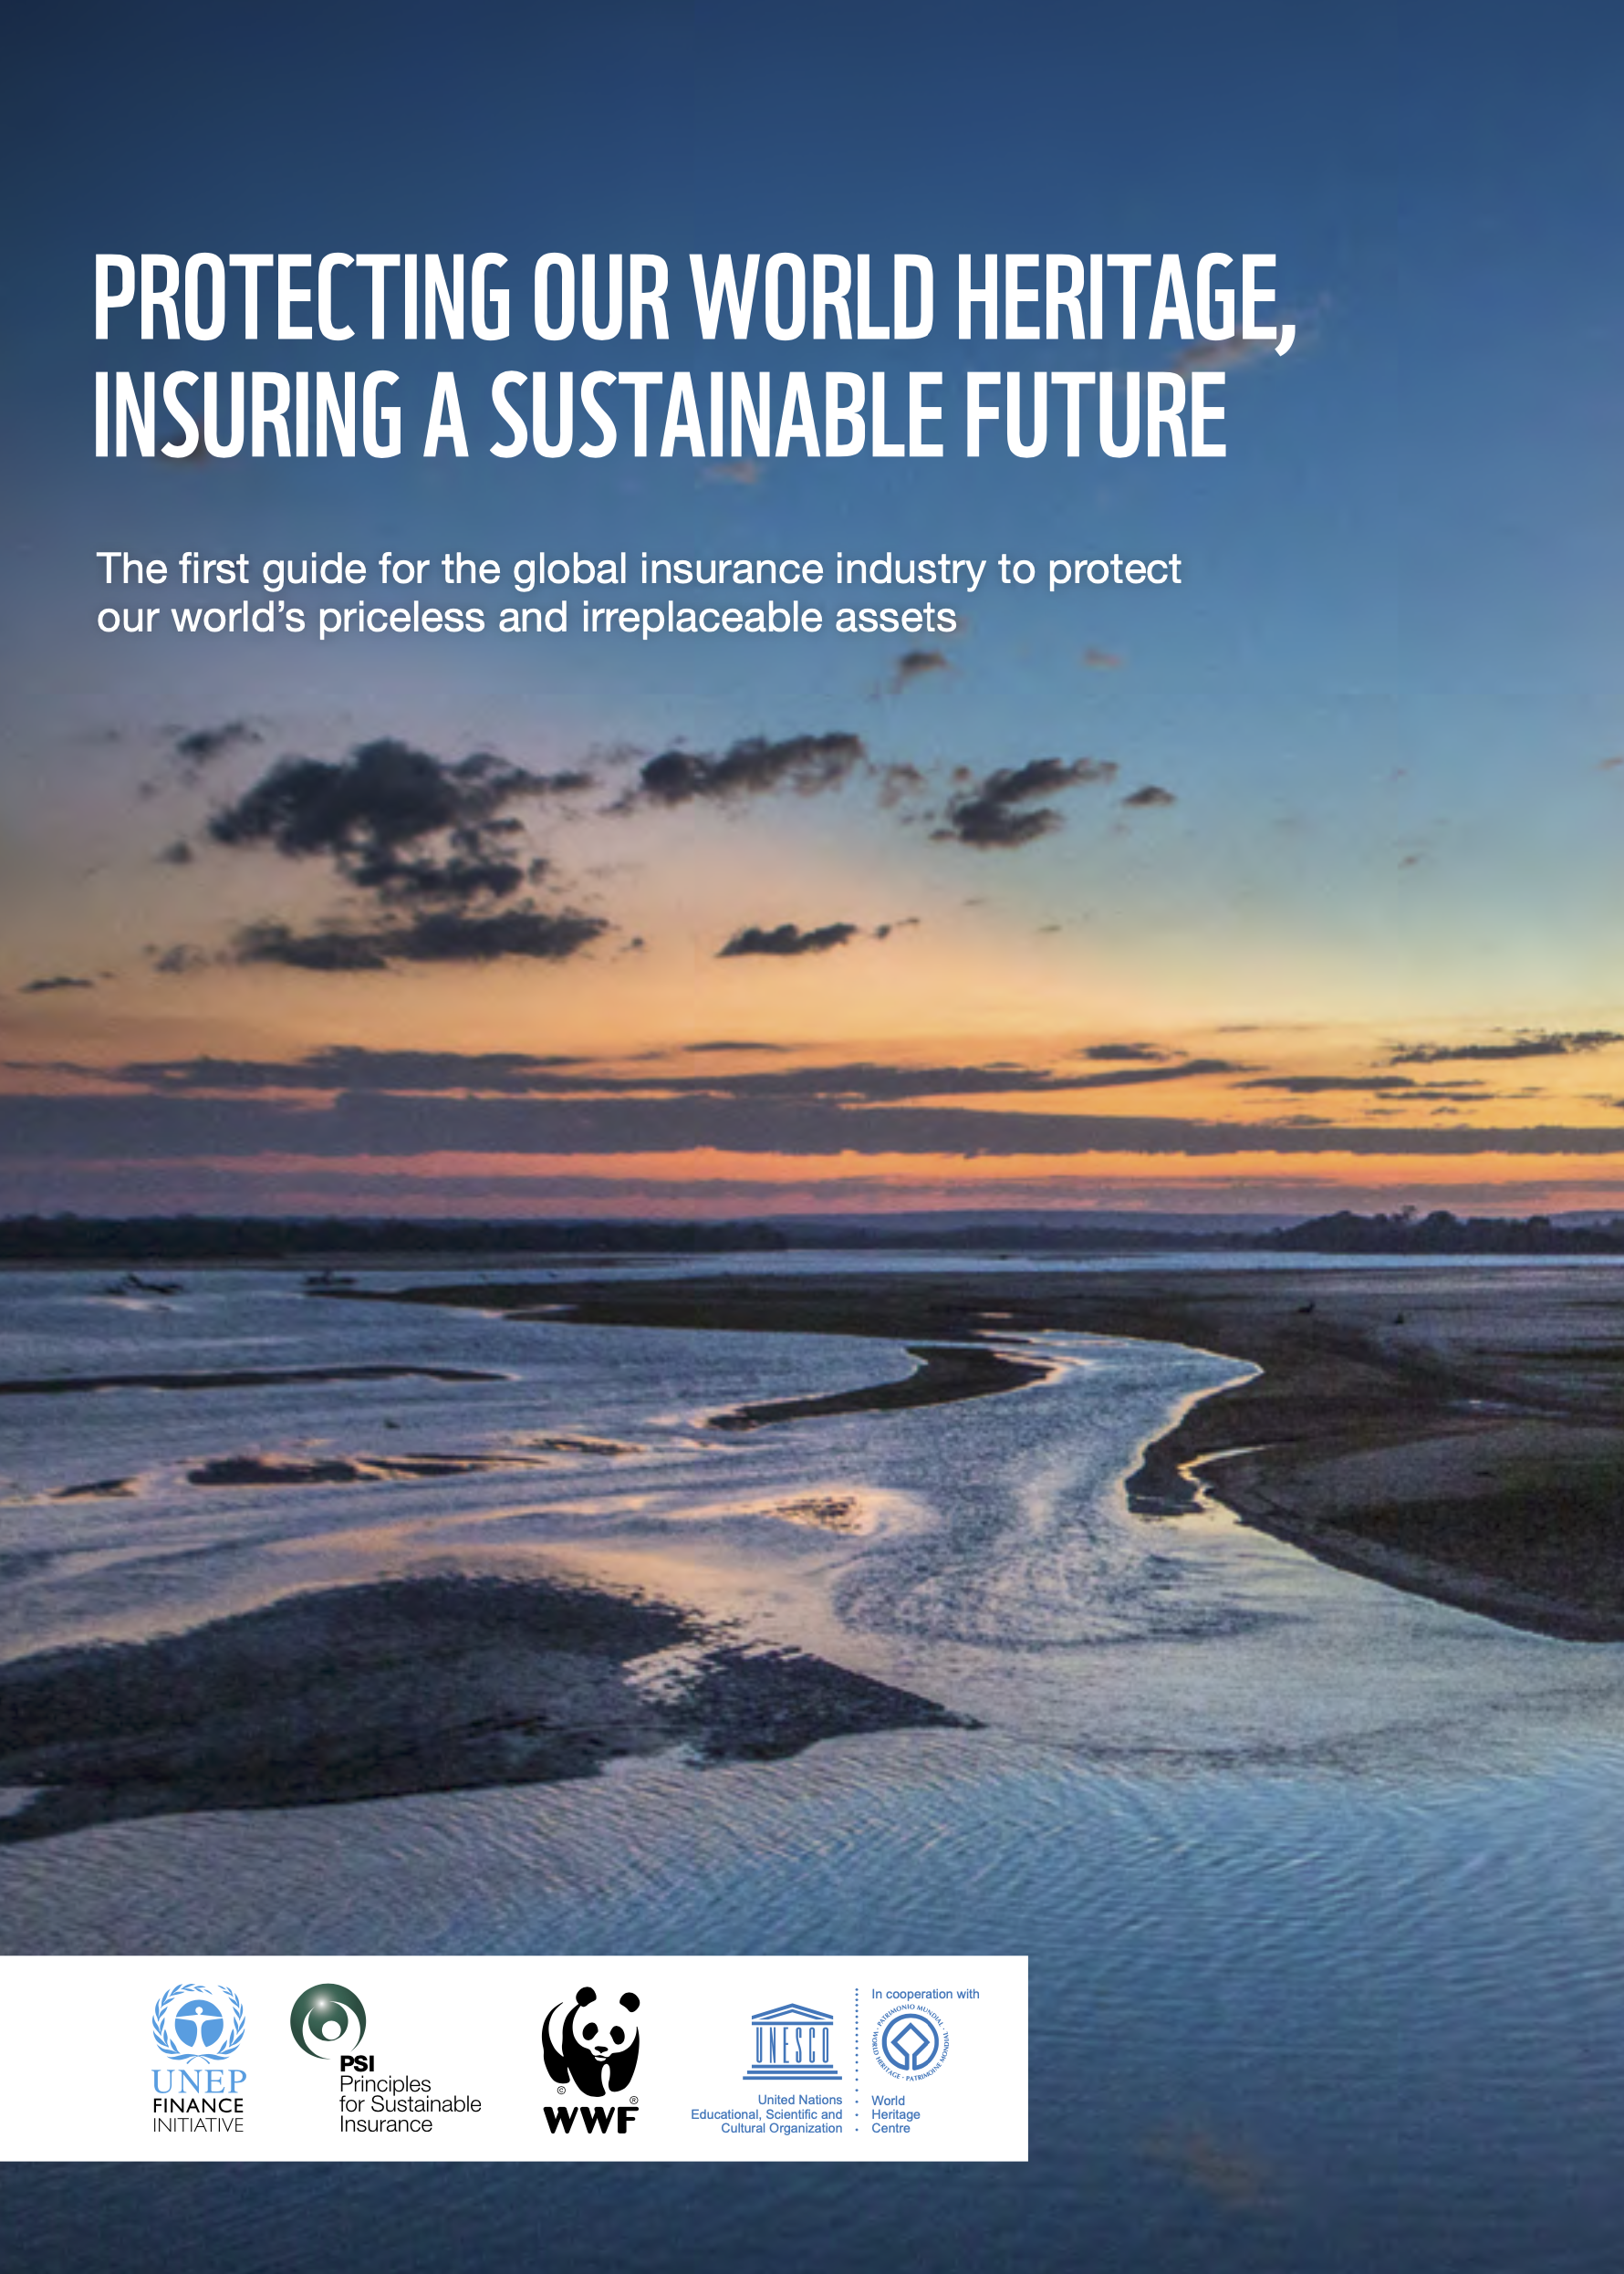 The first guide for the insurance industry to protect our world's priceless and irreplaceable assets